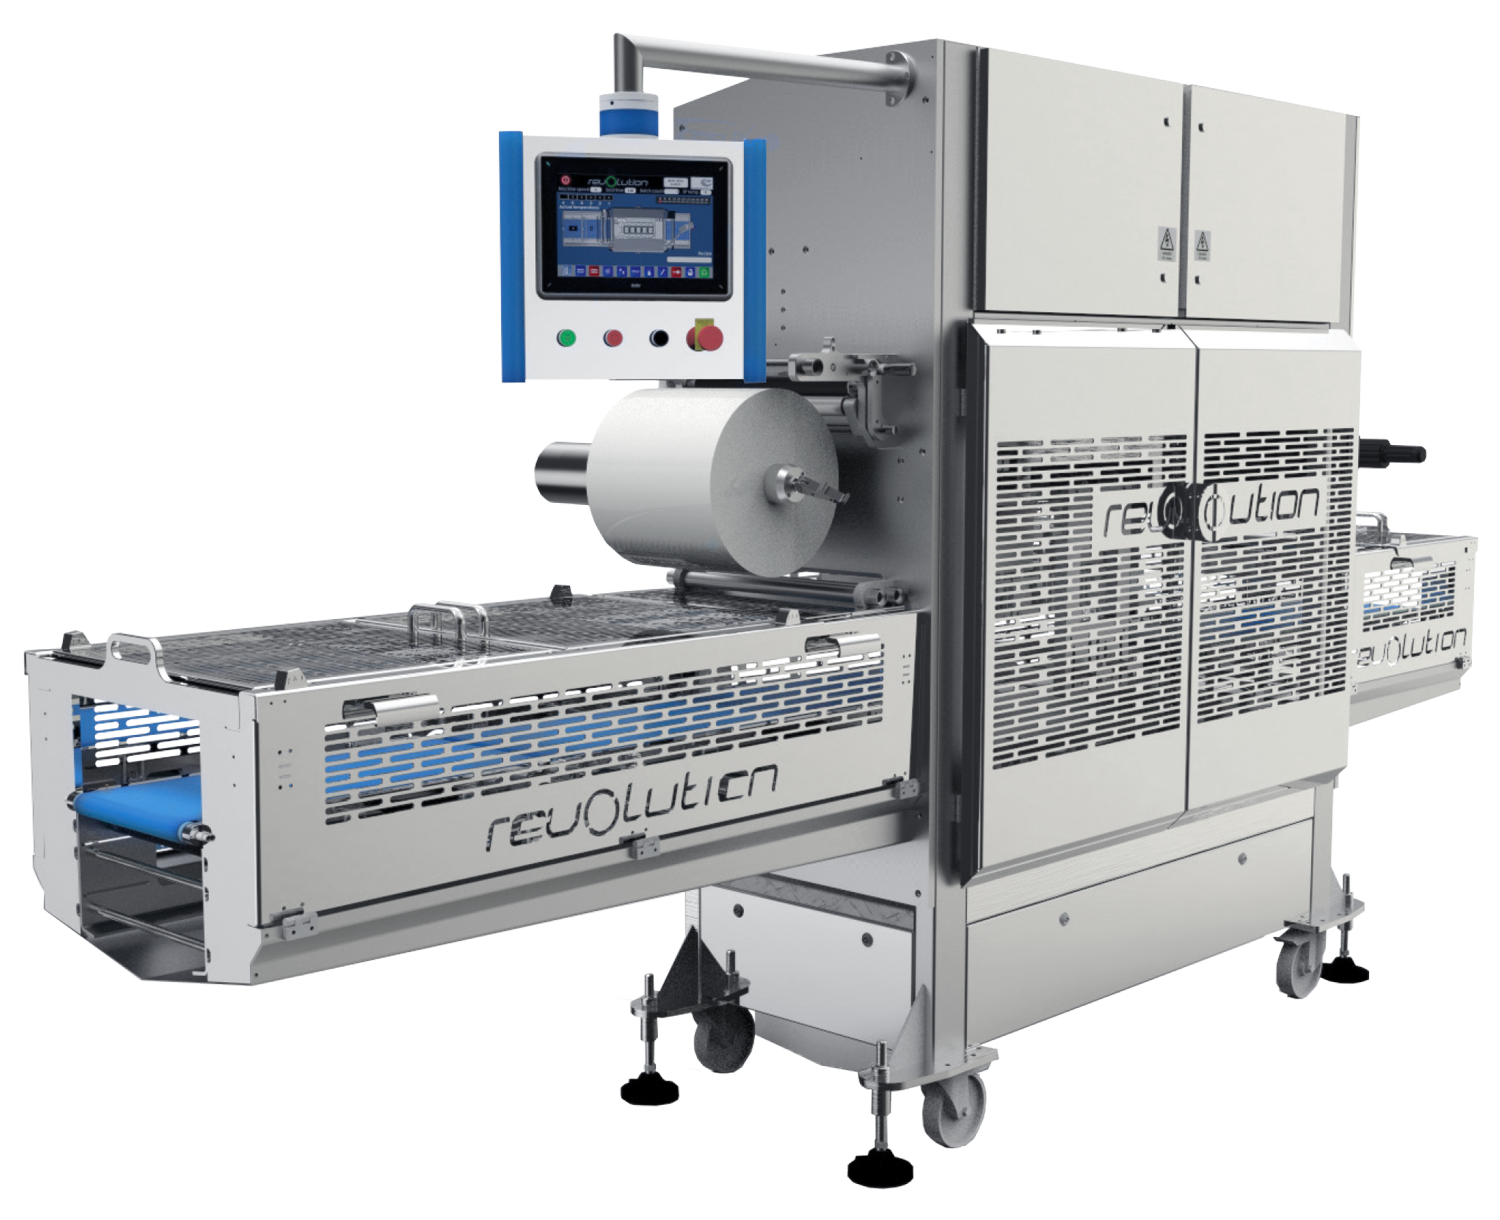 Revolution Top Seal machine by Packaging Automation.